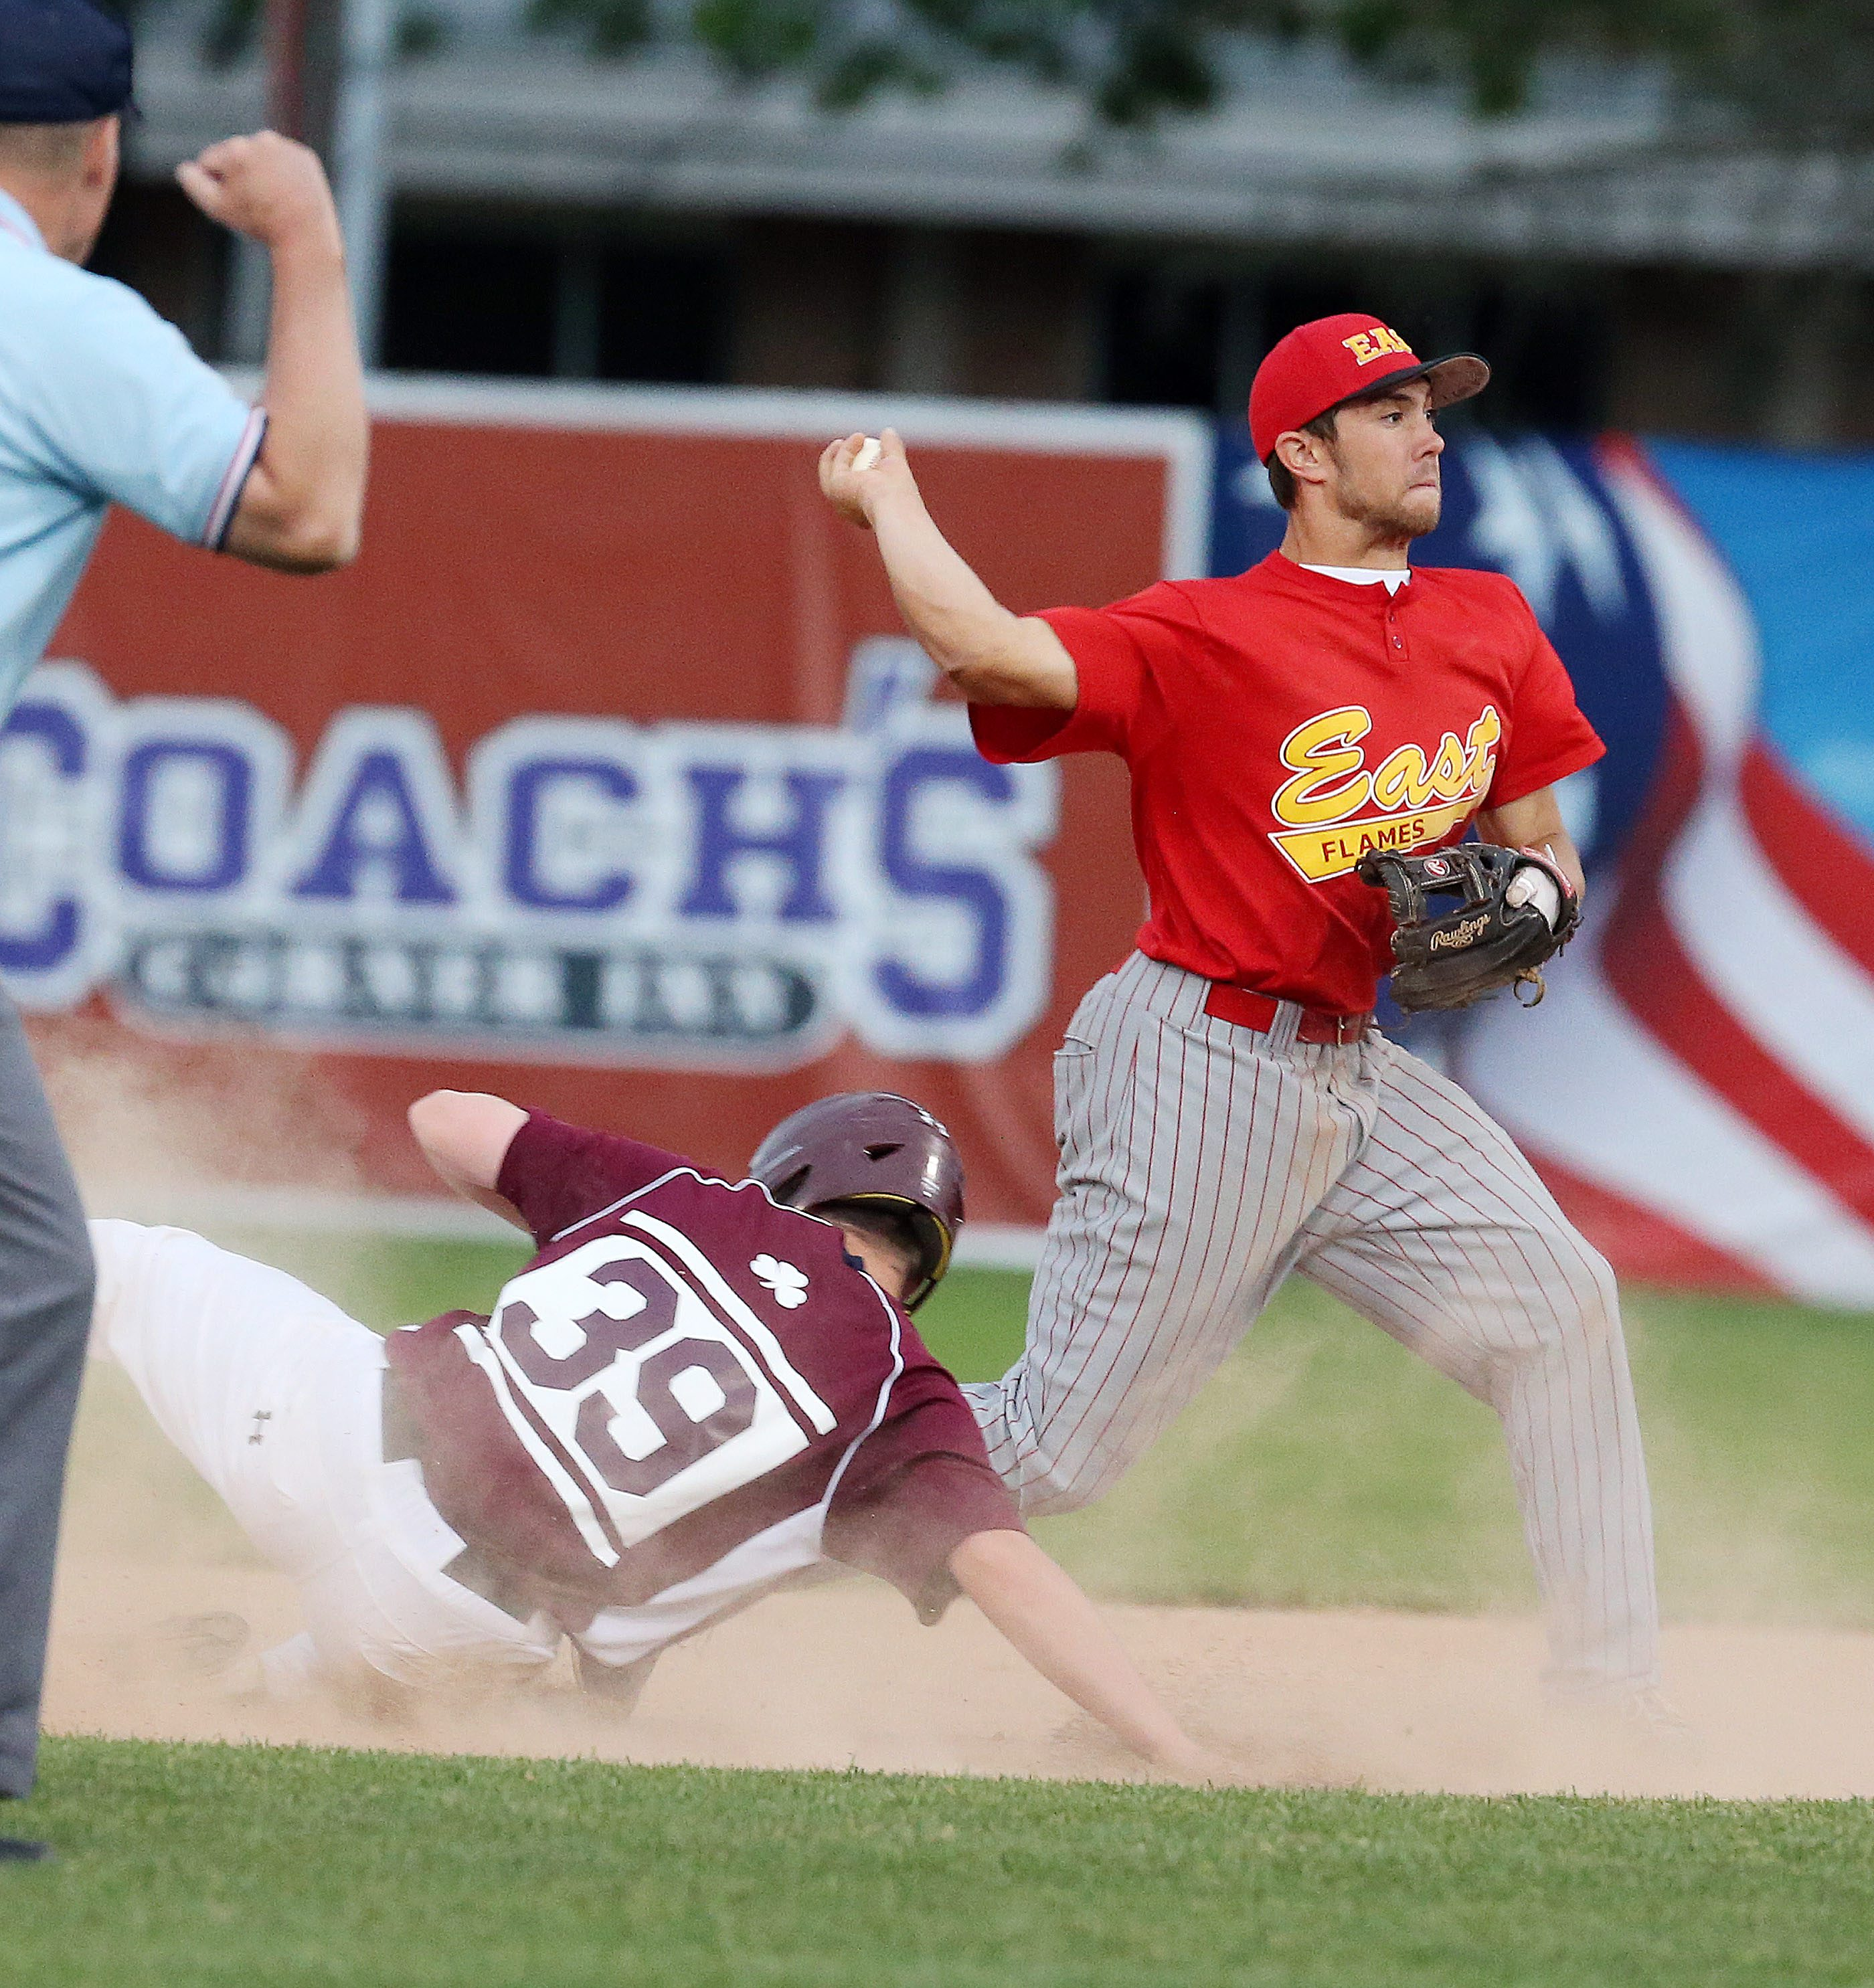 Williamsville East's  Charlie Mack turns a double play during the Flames' regional win over Section V champion Aquinas. Mack is among the Western New Yorkers to earn All-State honors in his respective class from the New York State Sportswriters Association. (James P. McCoy/Buffalo News)